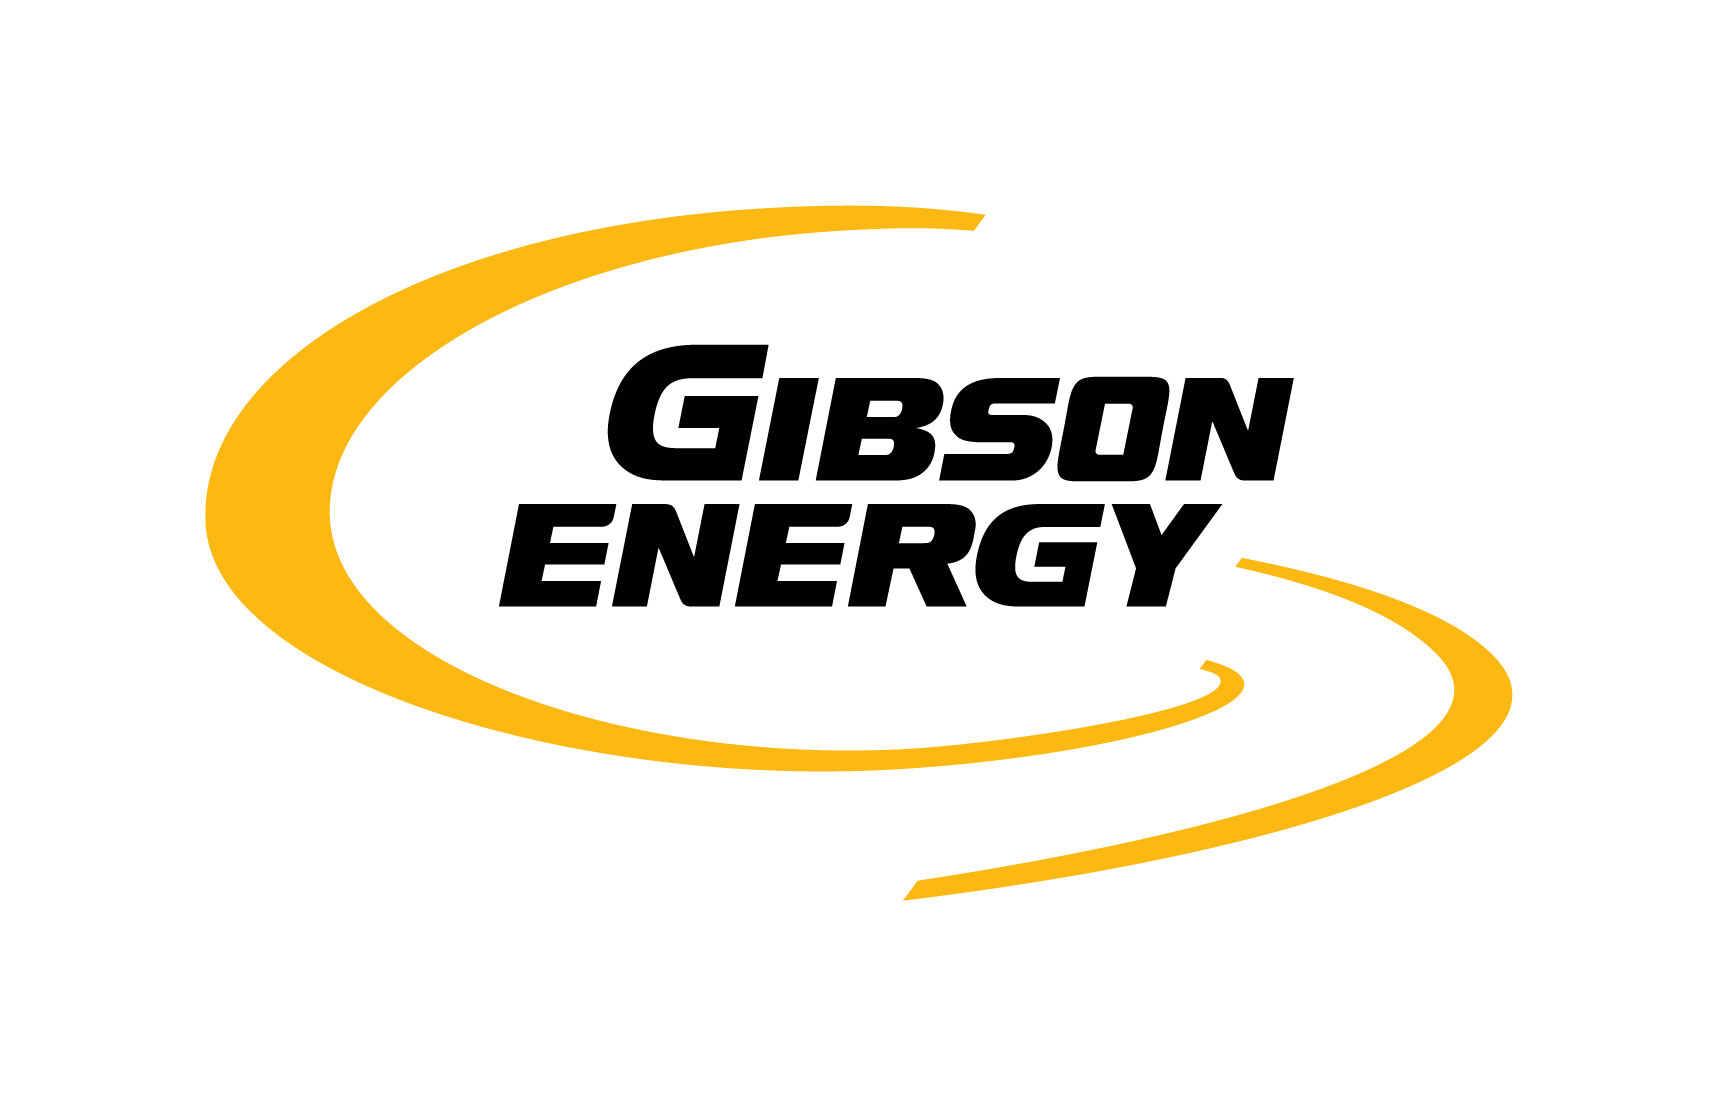 Gibson Energy and USD Announce Joint Venture to Construct DRU at Hardisty Utilizing Innovative DRUbit™ Technology and Agreement with ConocoPhillips for 50,000 bbl/d of Capacity